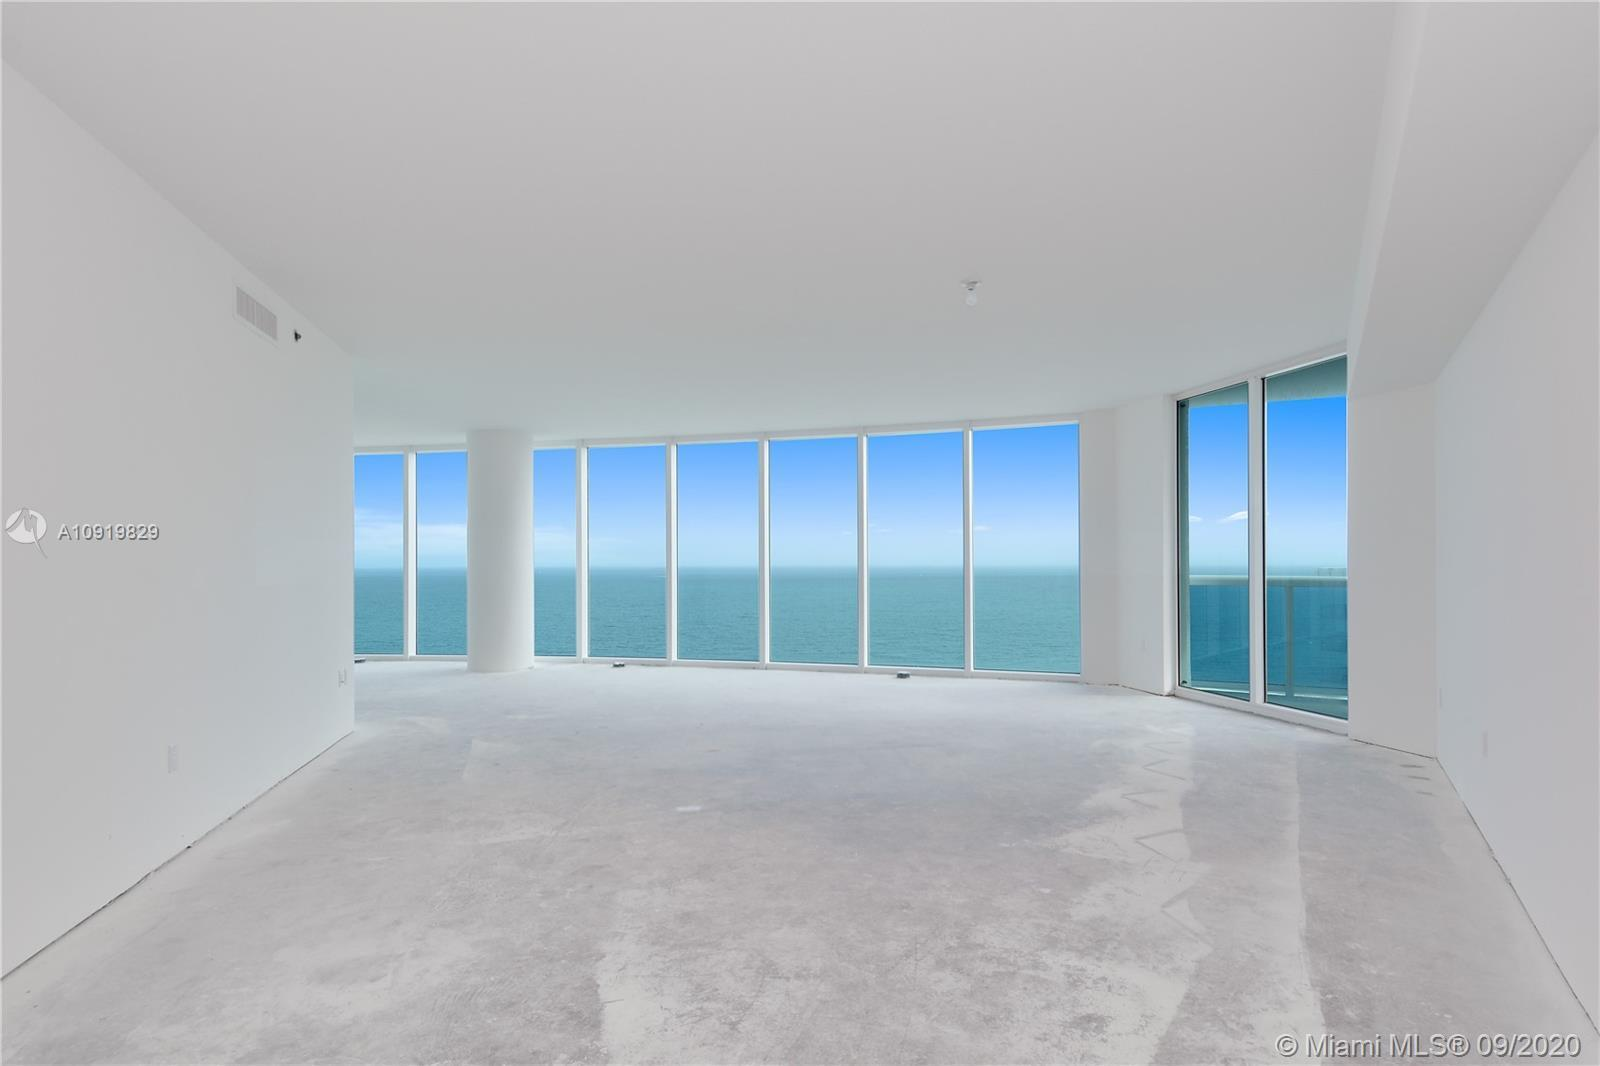 WOW! THE CROWN JEWEL OF LUXURIOUS TRUMP HOLLYWOOD!  Beachfront Trump Tower, built in 2010 - 41 Story